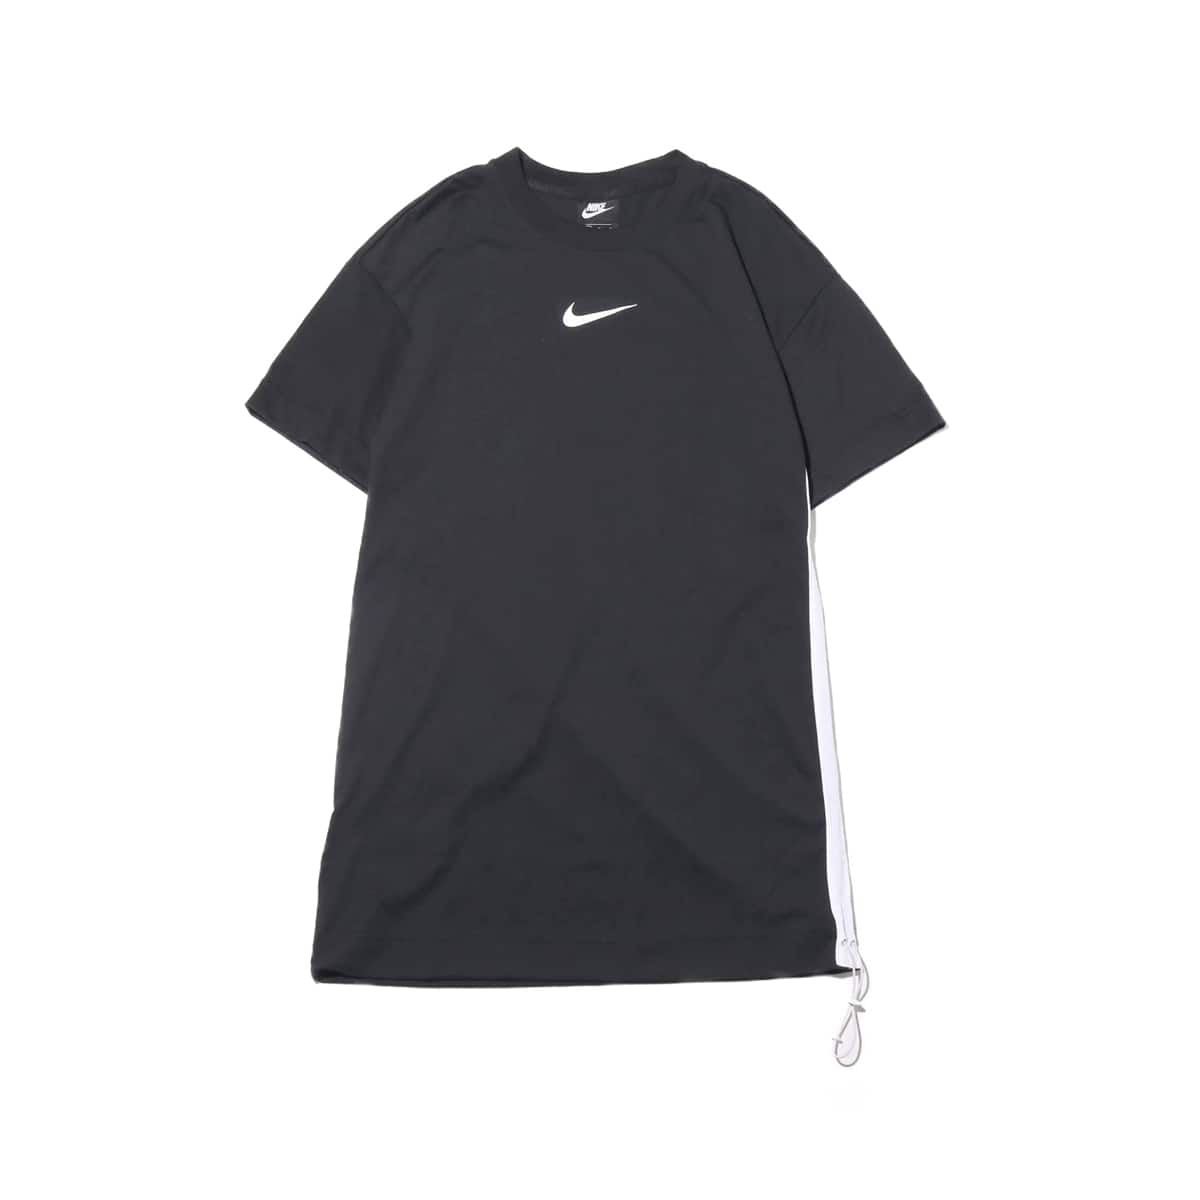 NIKE AS W NSW SWSH DRESS BLACK/WHITE 19SU-I_photo_large